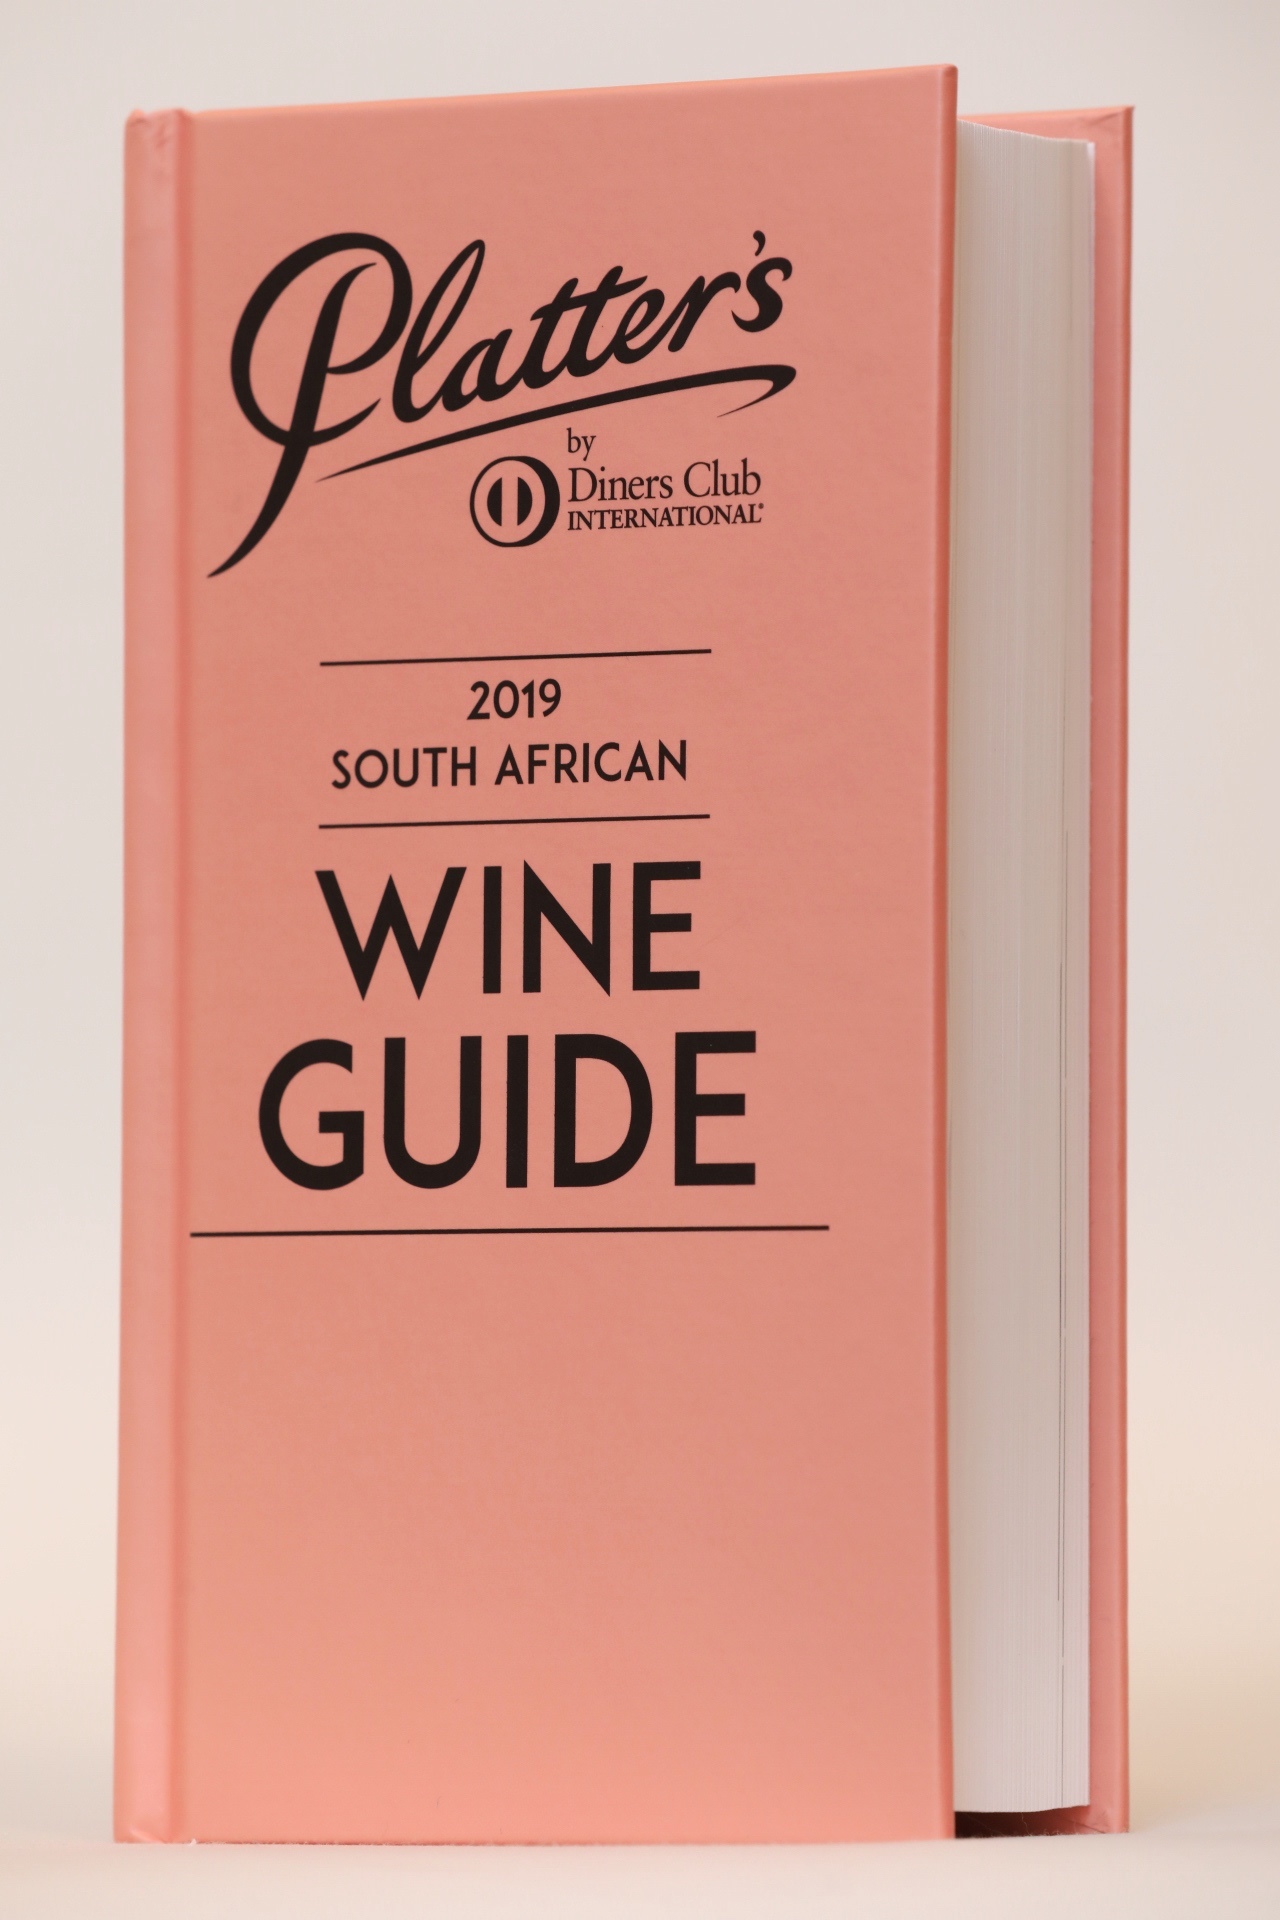 Platter's 2019 South African Wine Guide